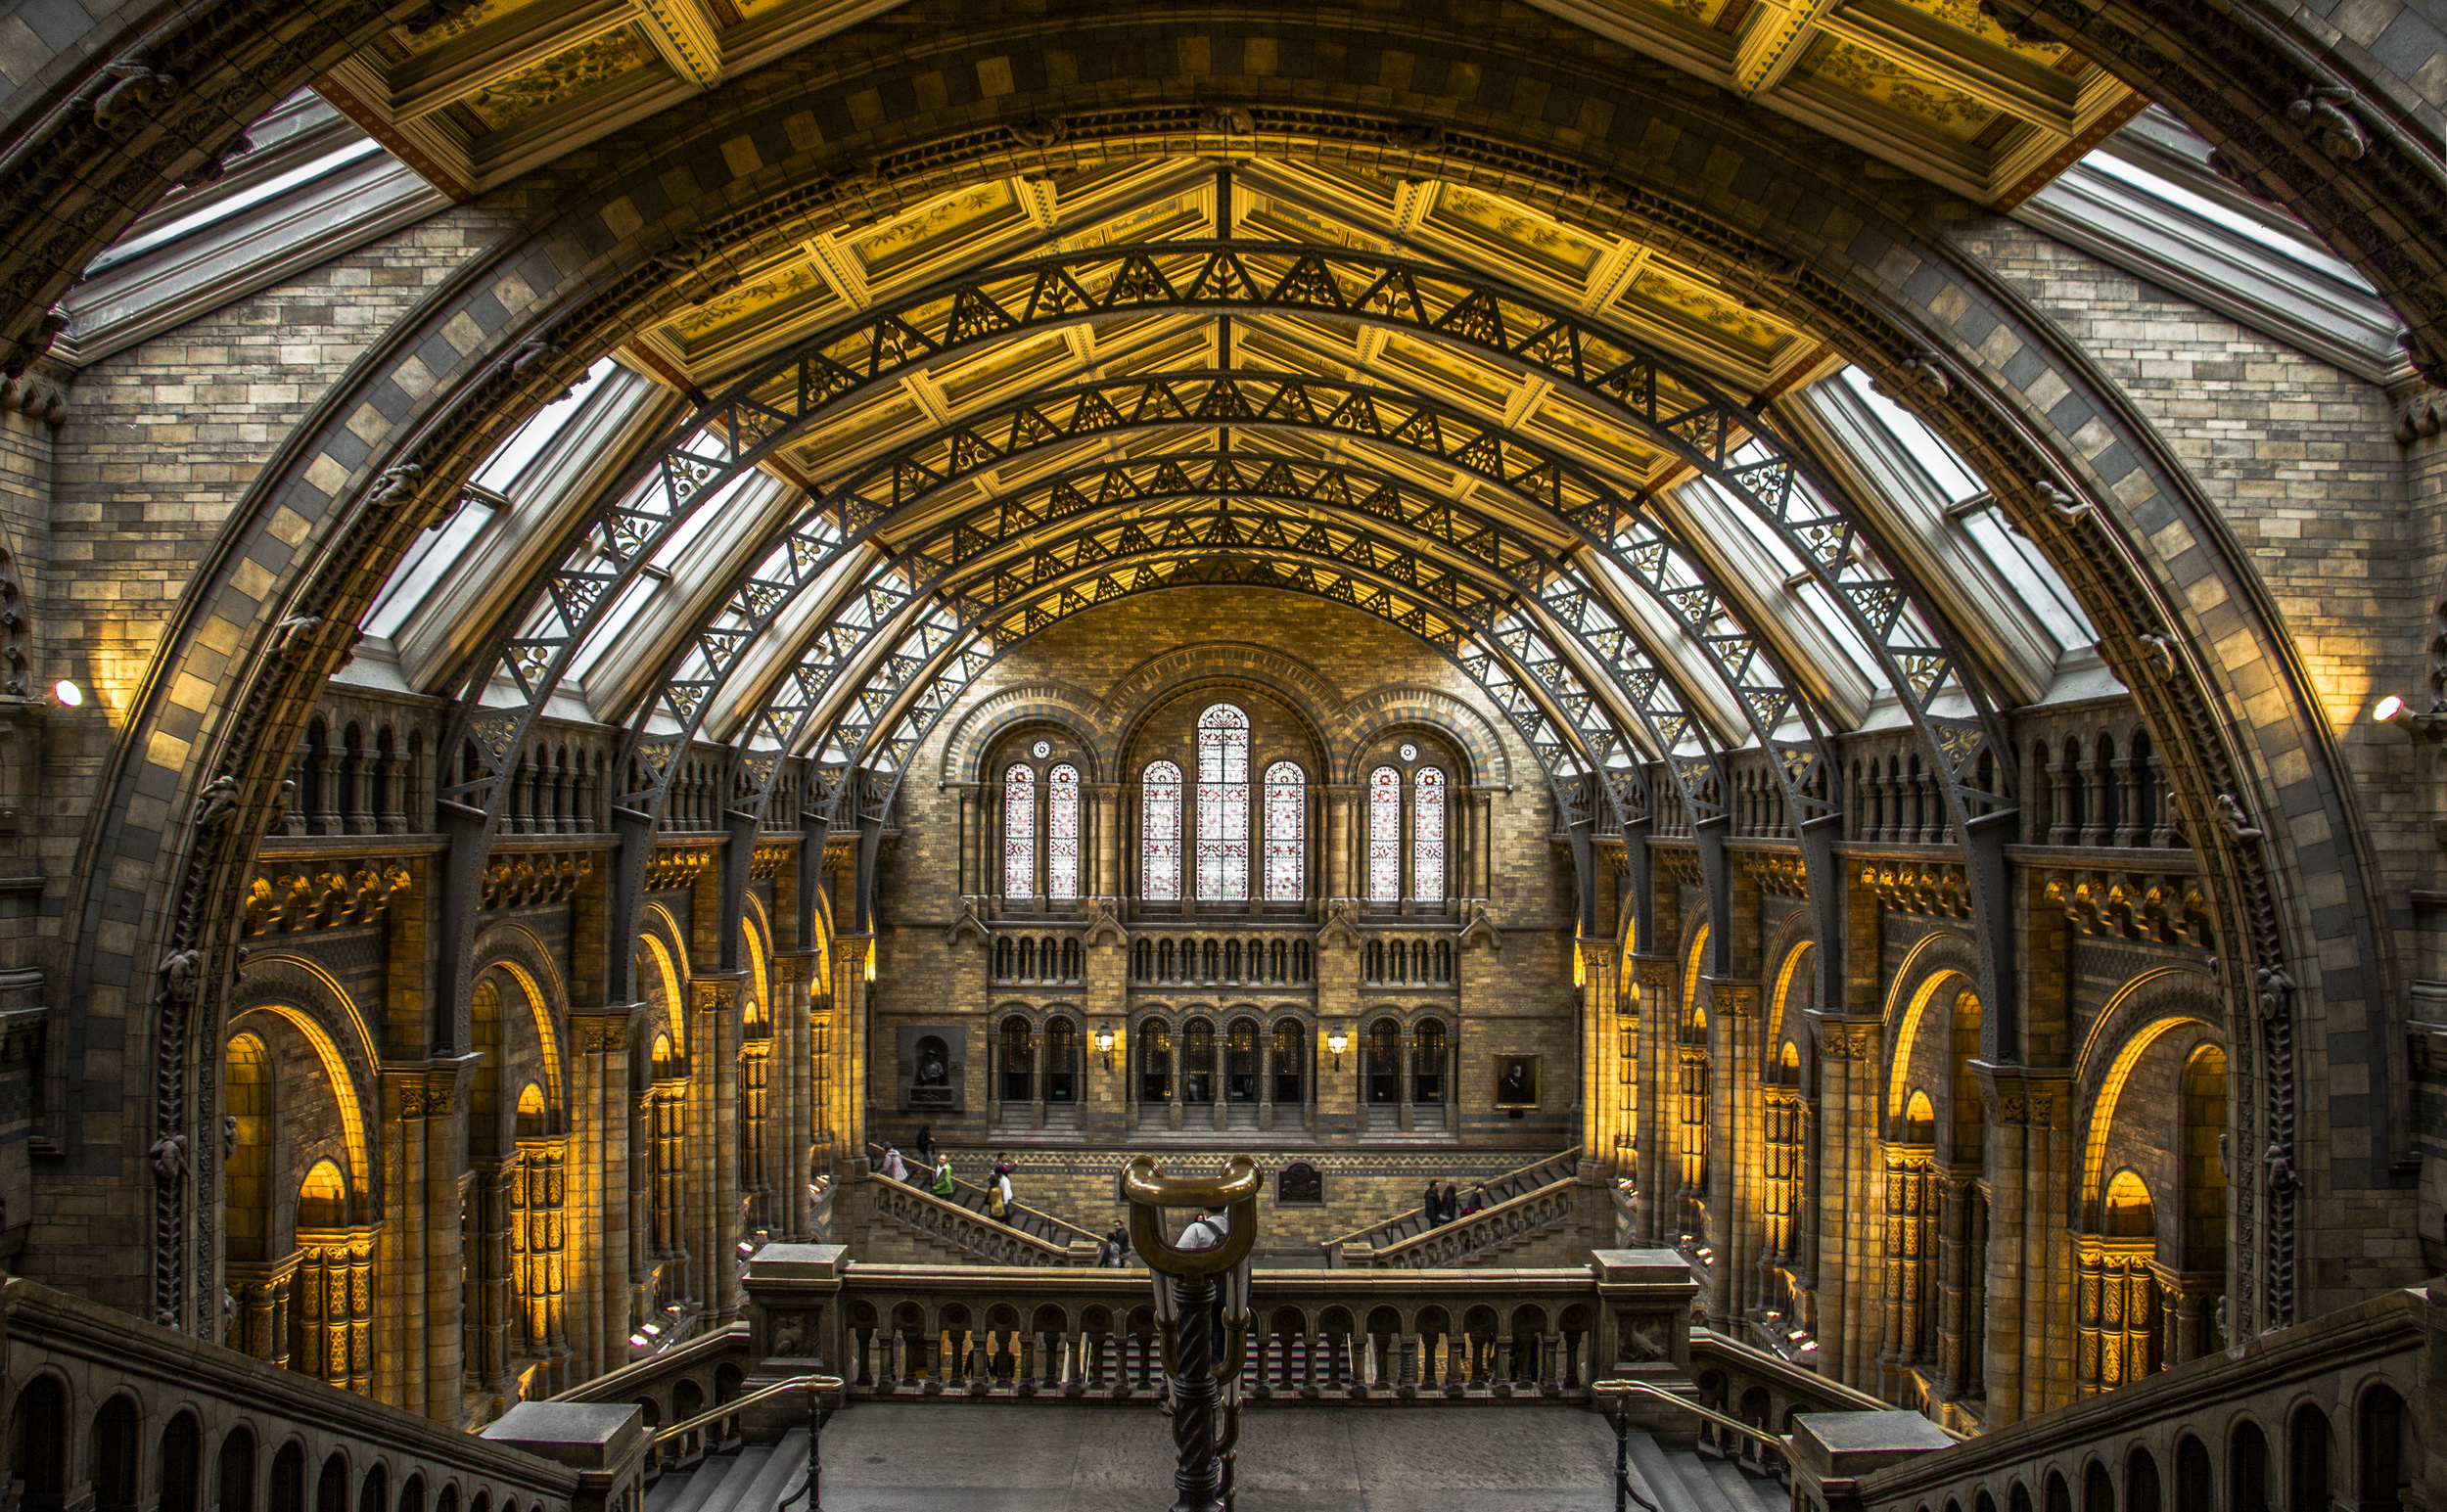 Photograph of National Museum, London